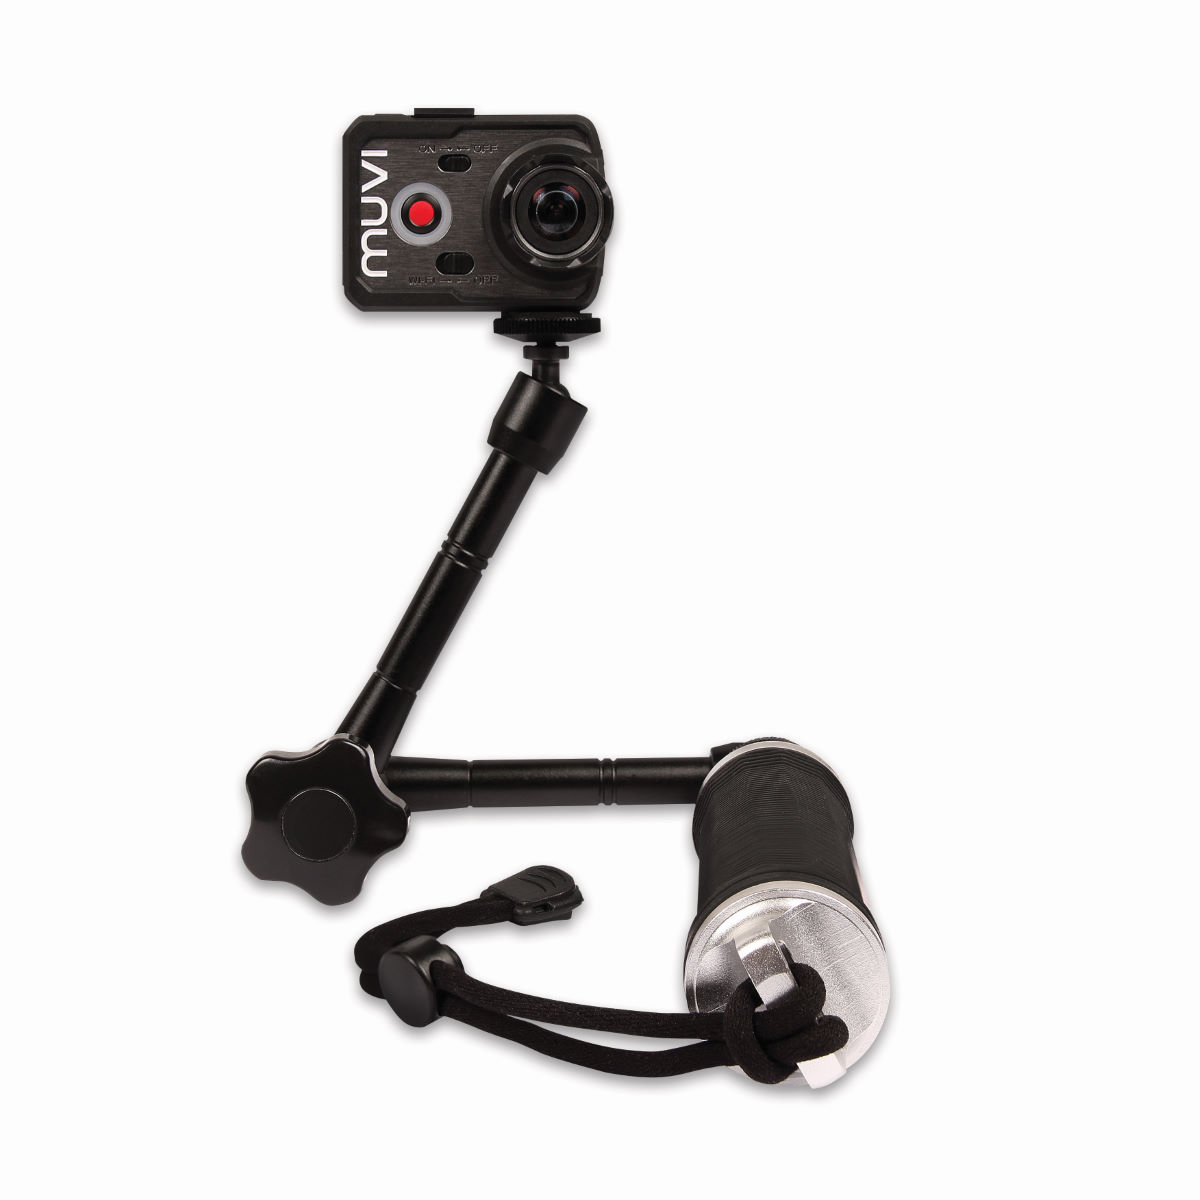 Veho Veho Muvi 3 Way Monopod with Extended Arm   Camera Spares